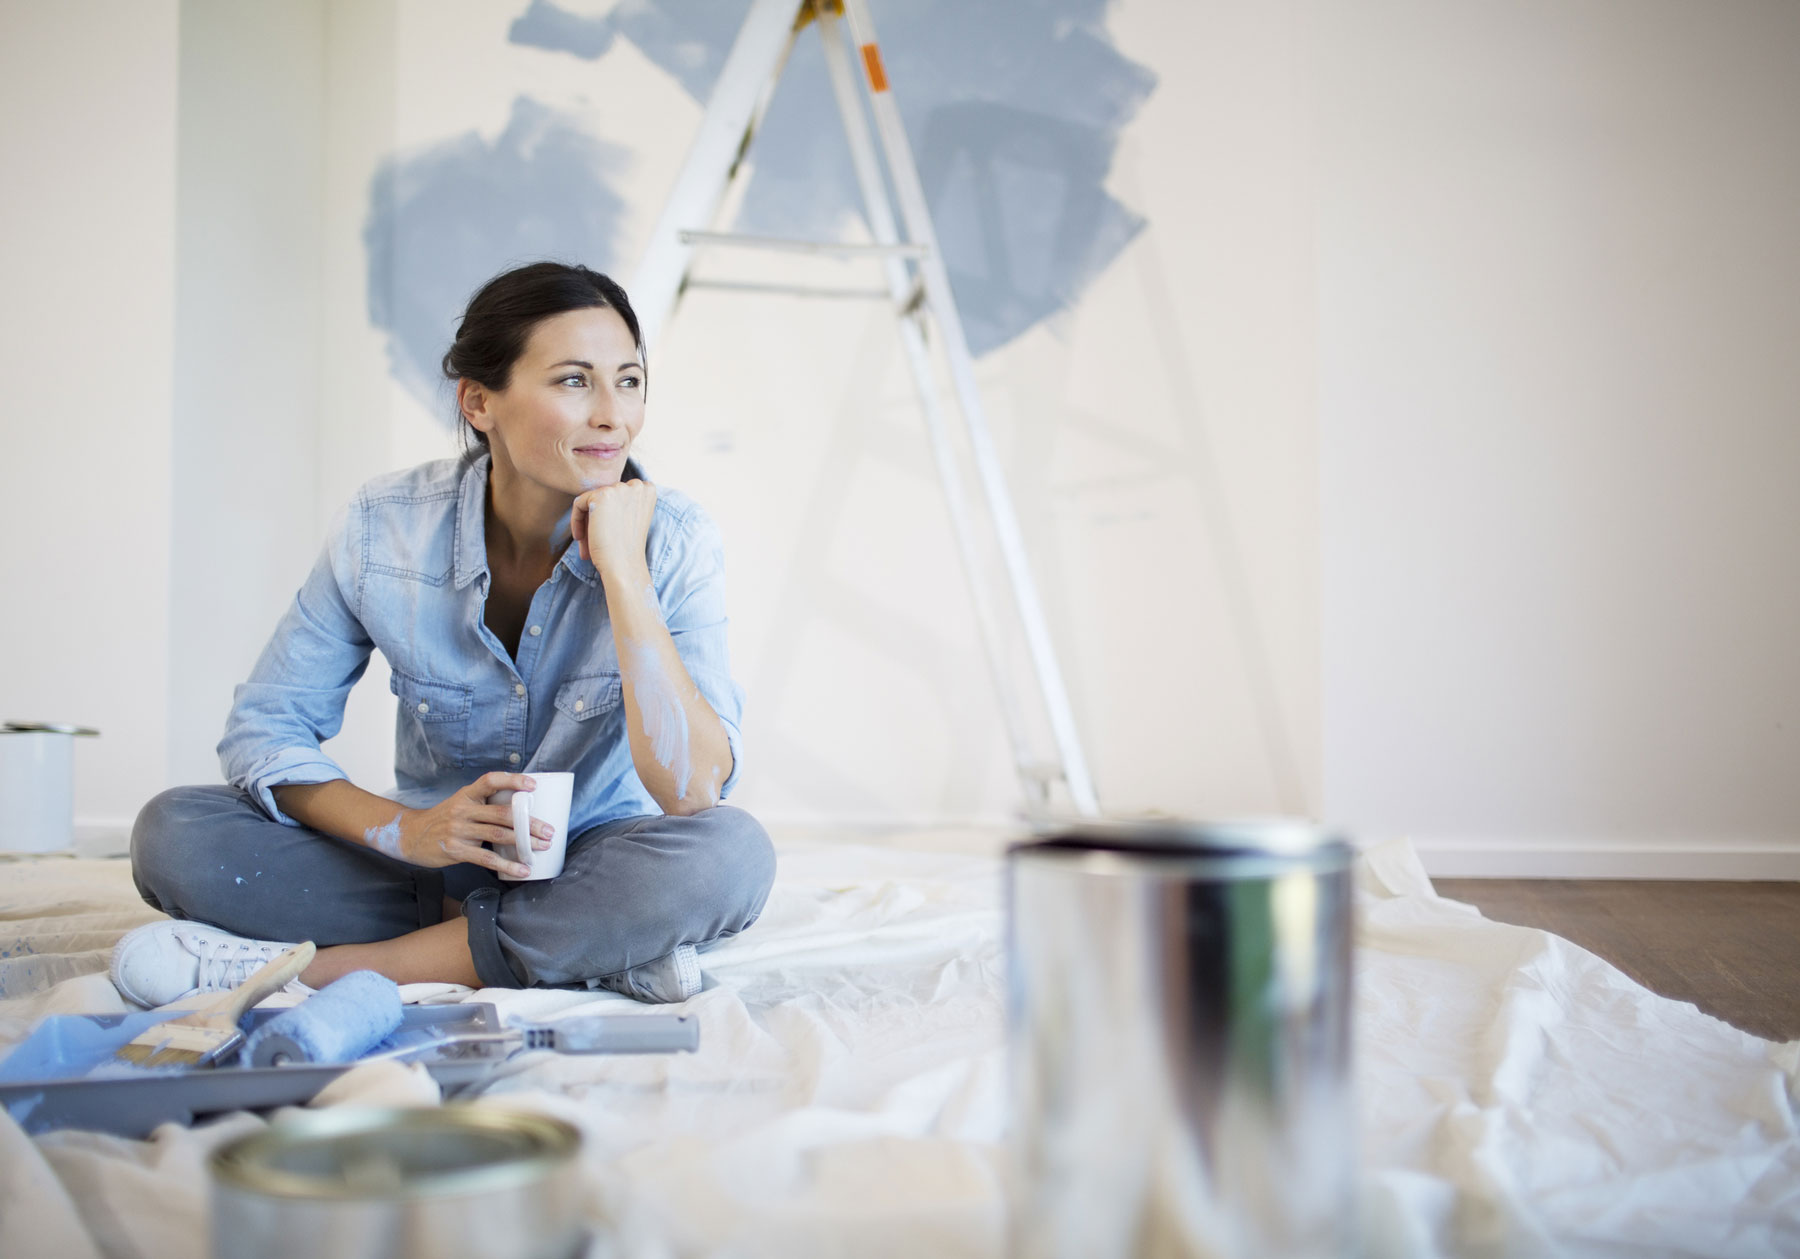 Woman painting her home